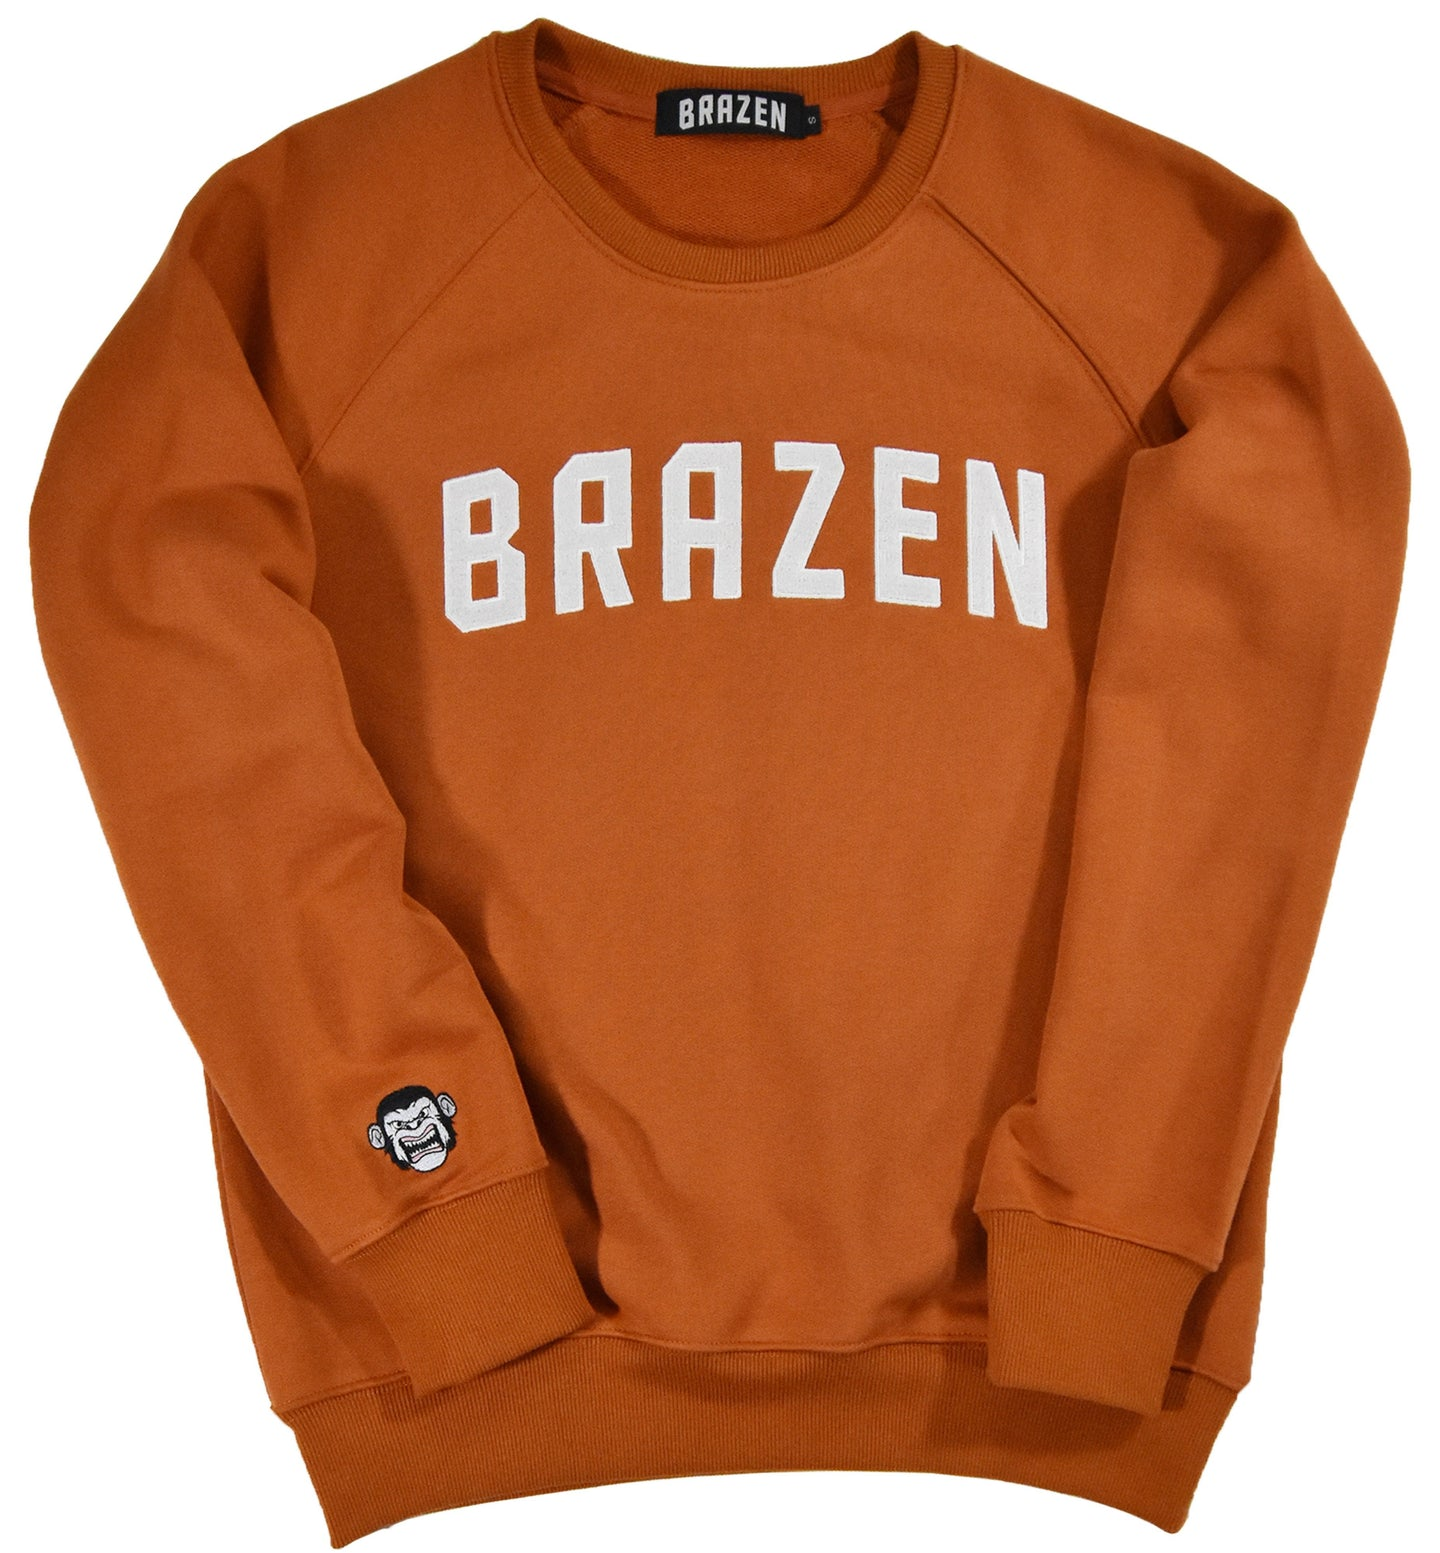 Brazen Sweatshirt - Burnt Orange